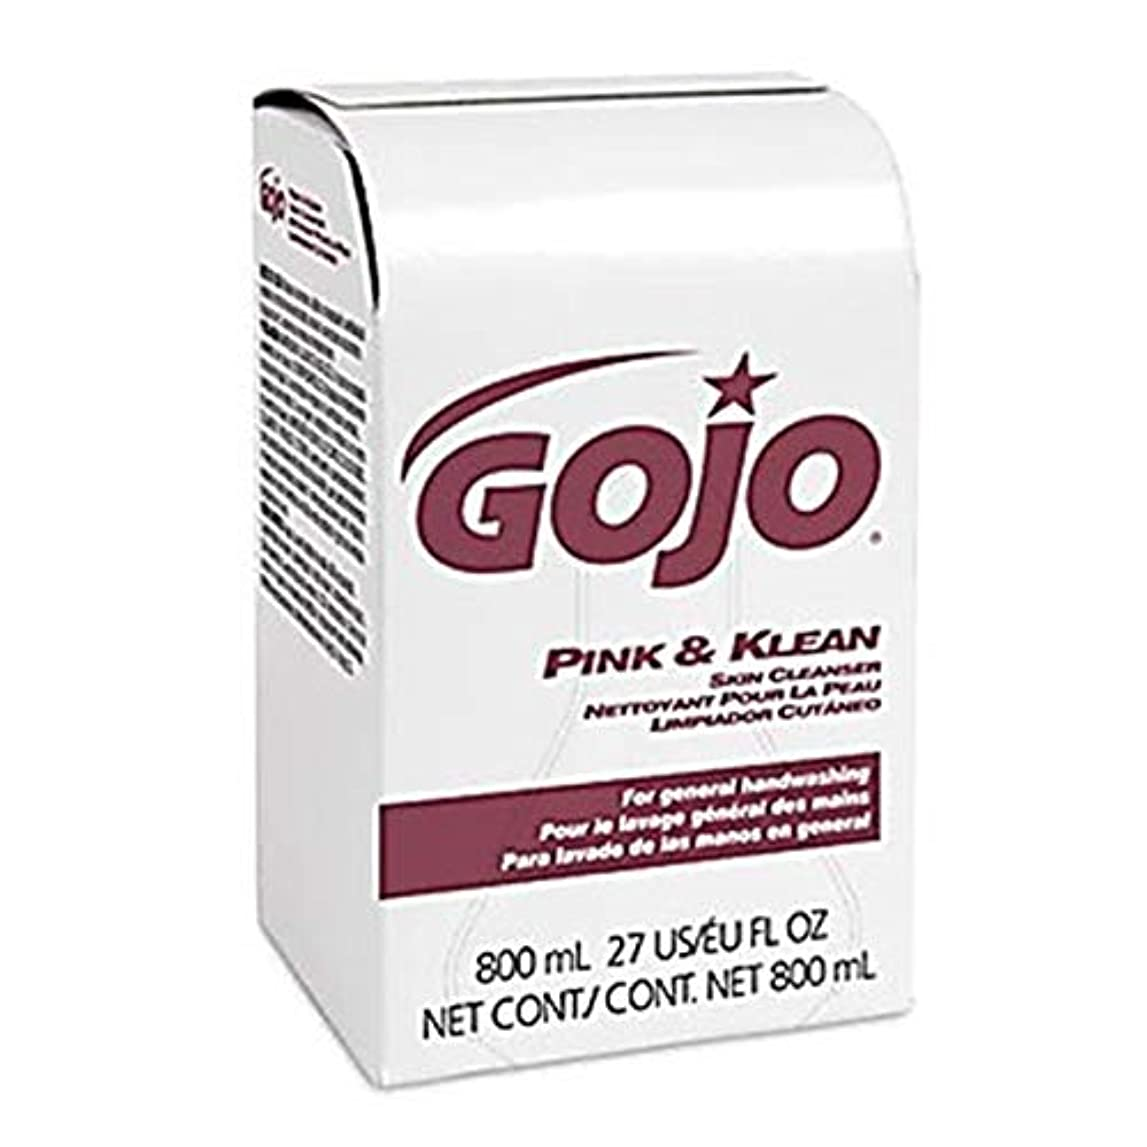 寓話一瞬打ち上げるPink + Klean Lotion Hand Soap Refill, 800ml GOJ912812 by Gojo